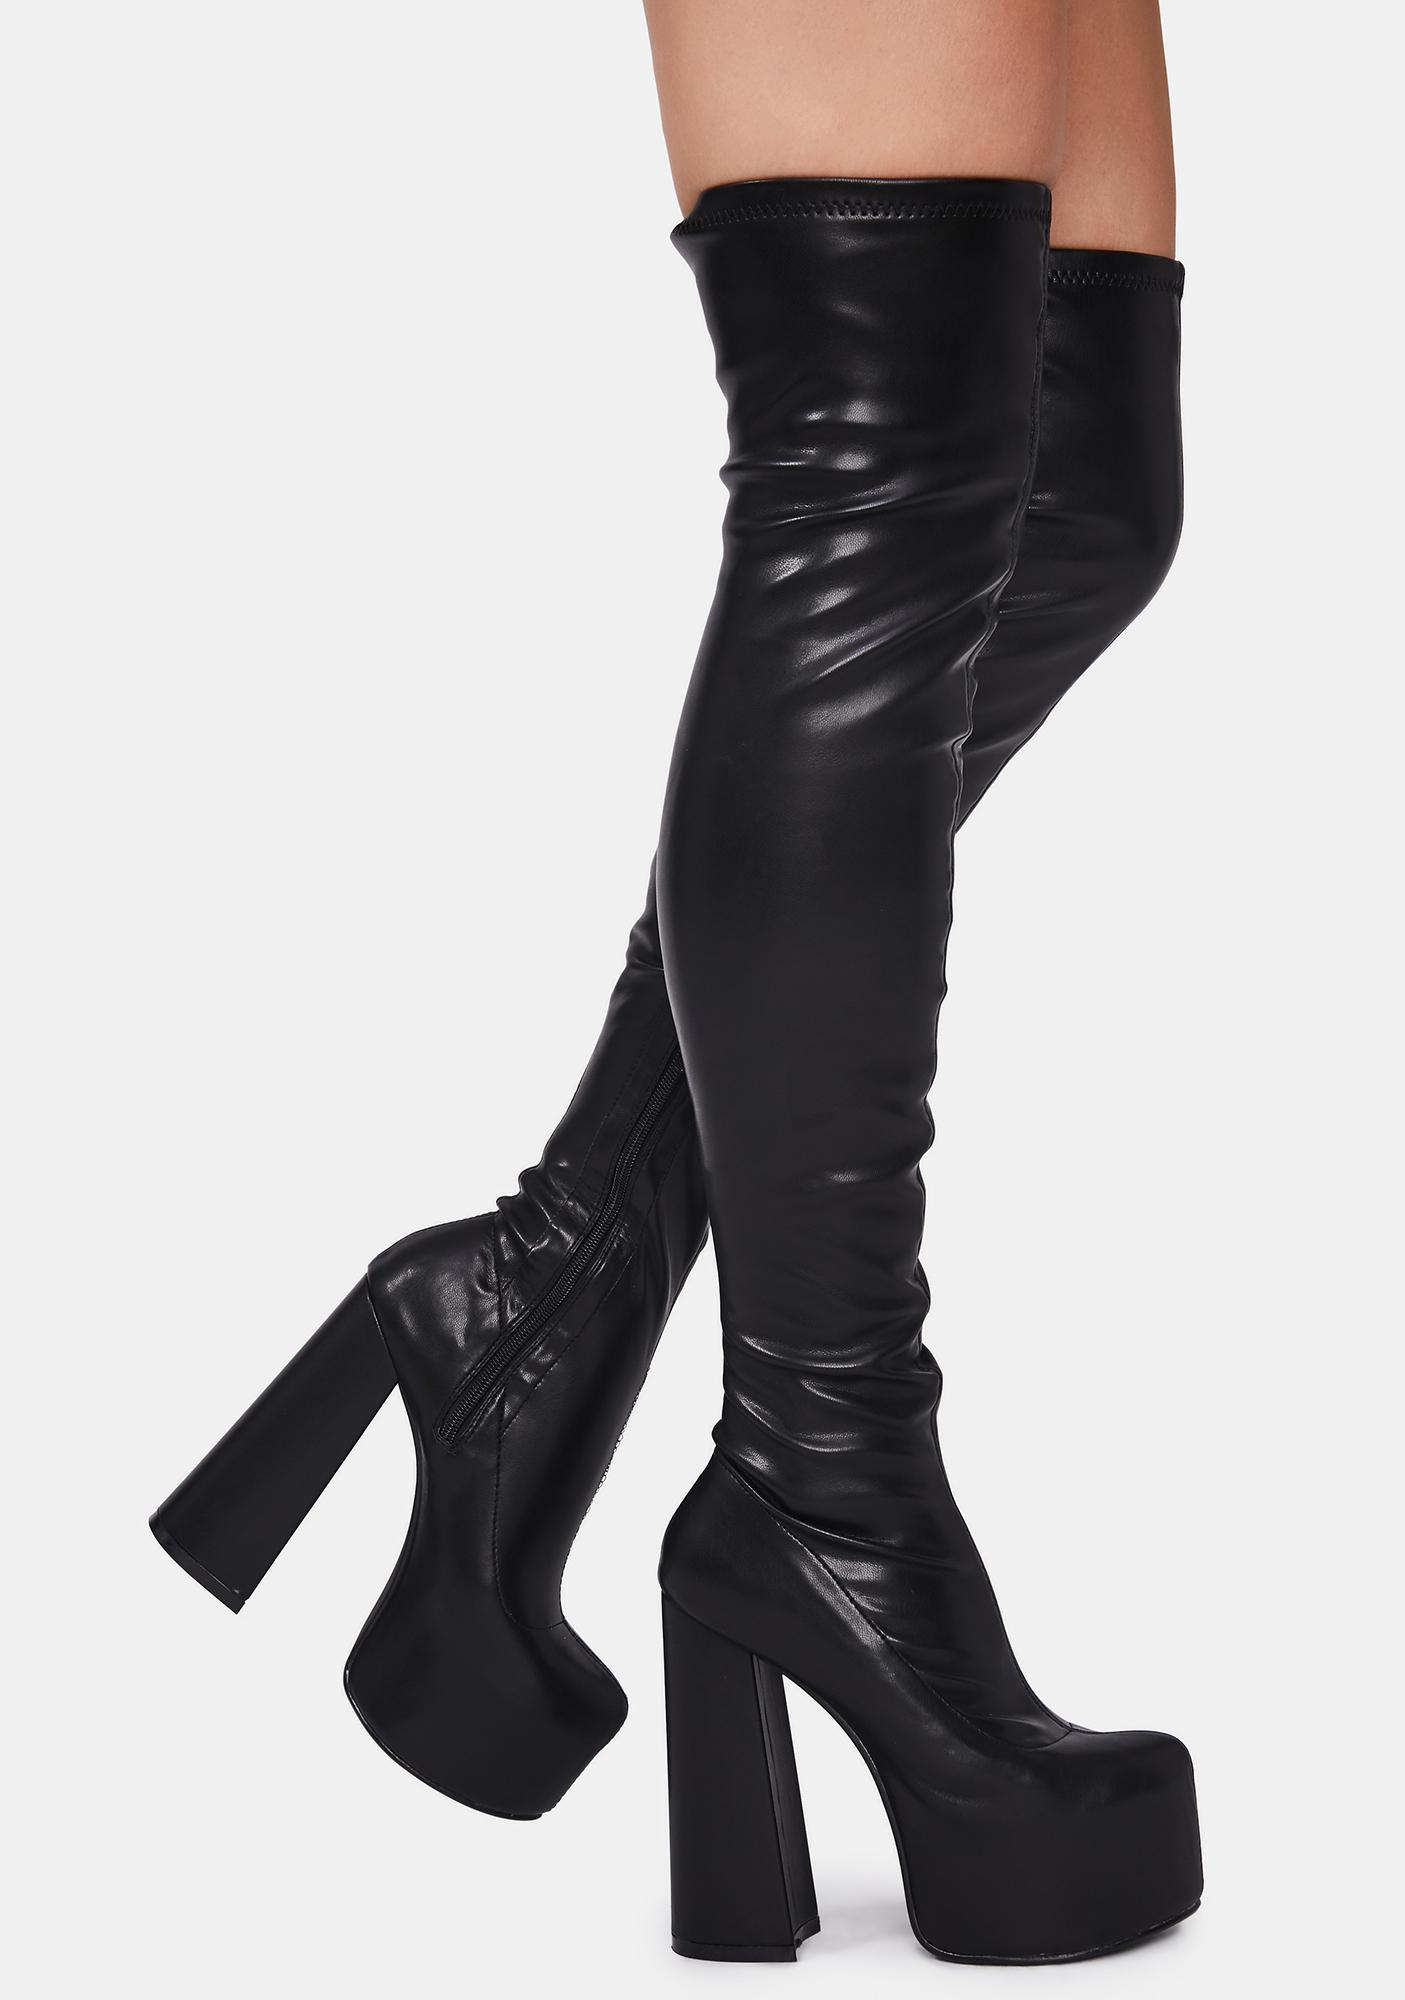 Lemon Drop by Privileged Havasu Knee High Boots